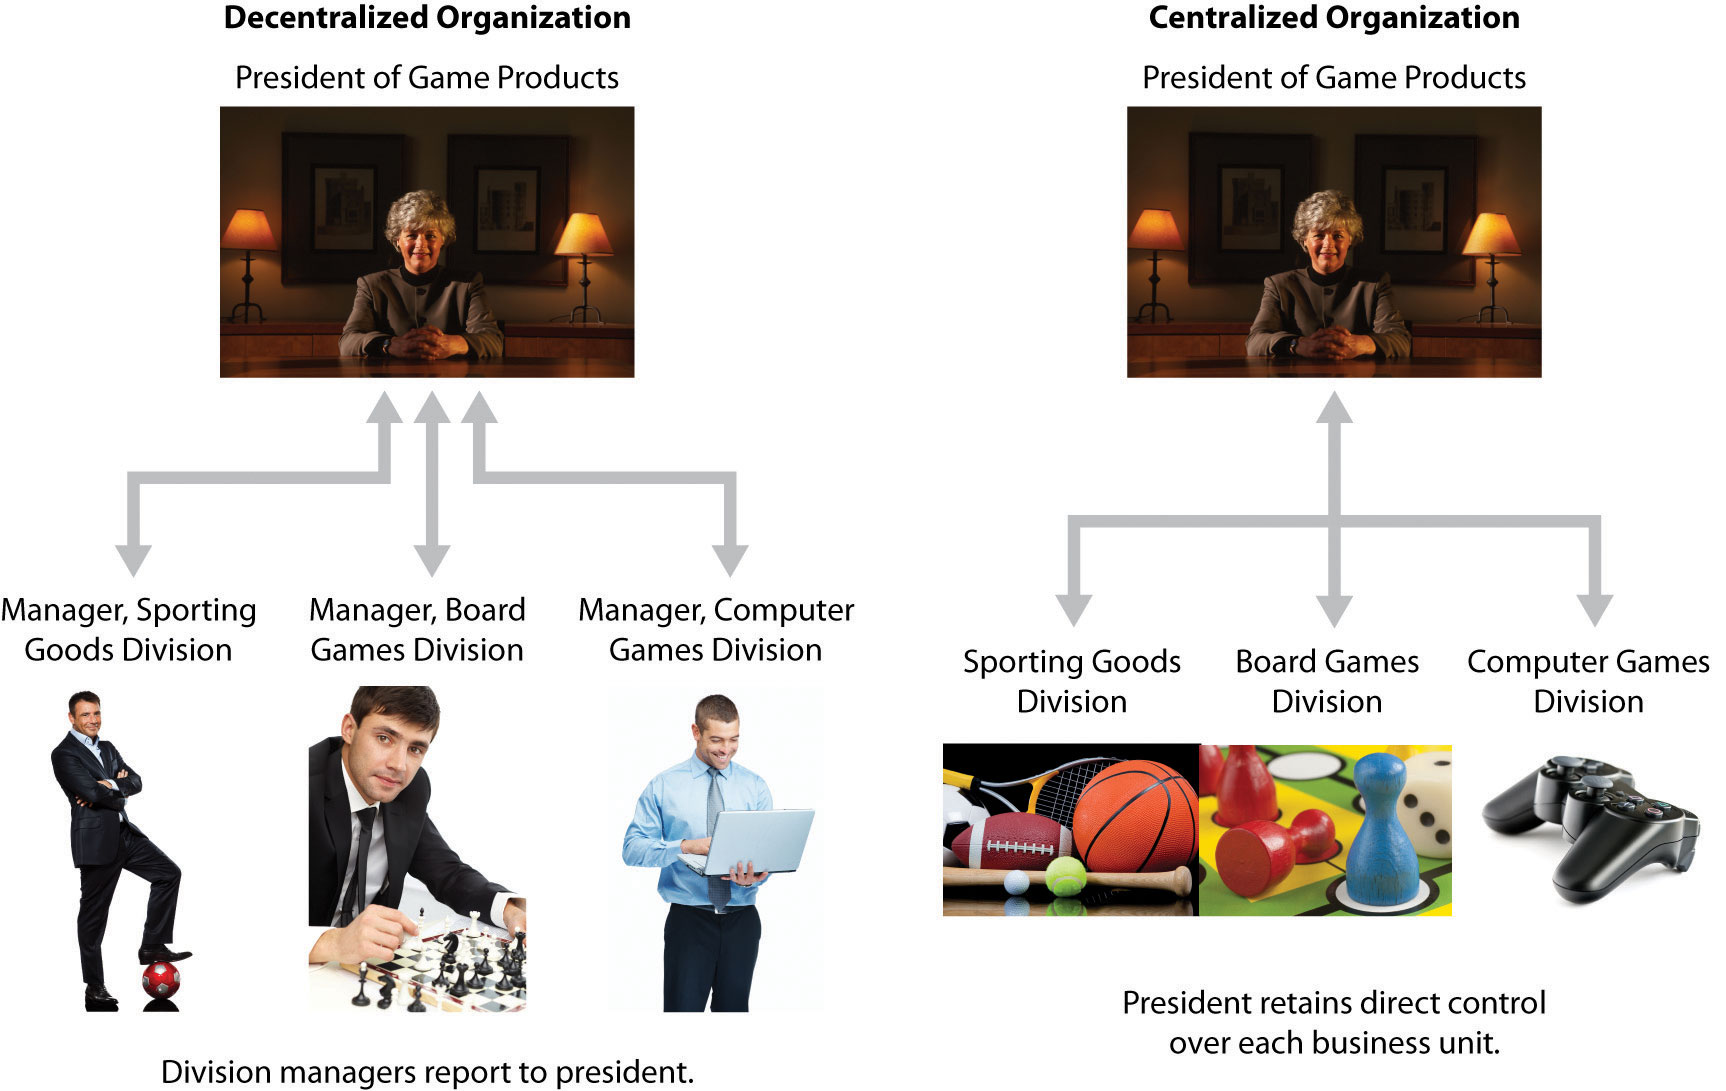 Control of an organization via a